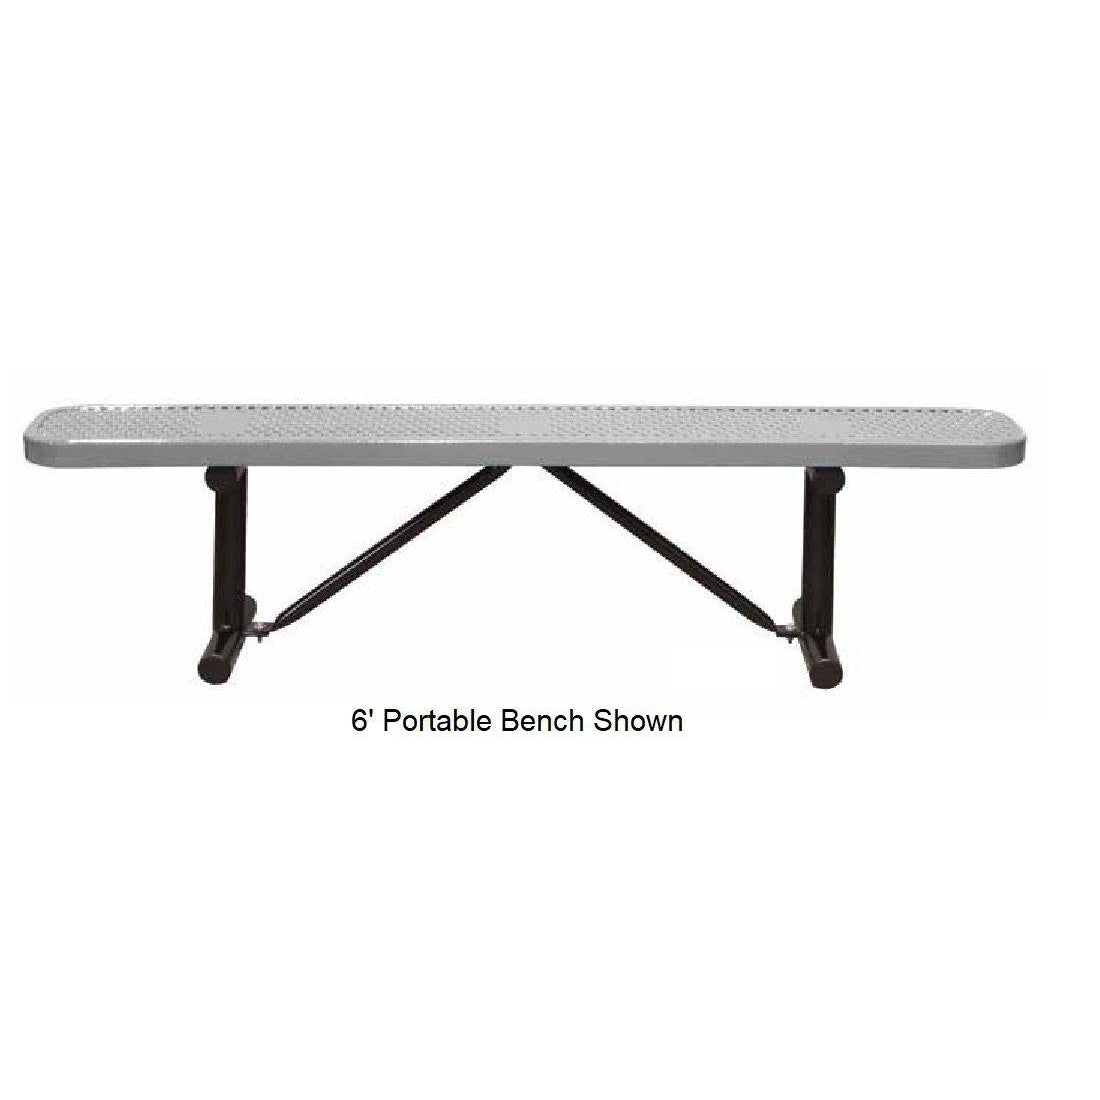 6' Standard Perforated Bench Without Back, Portable